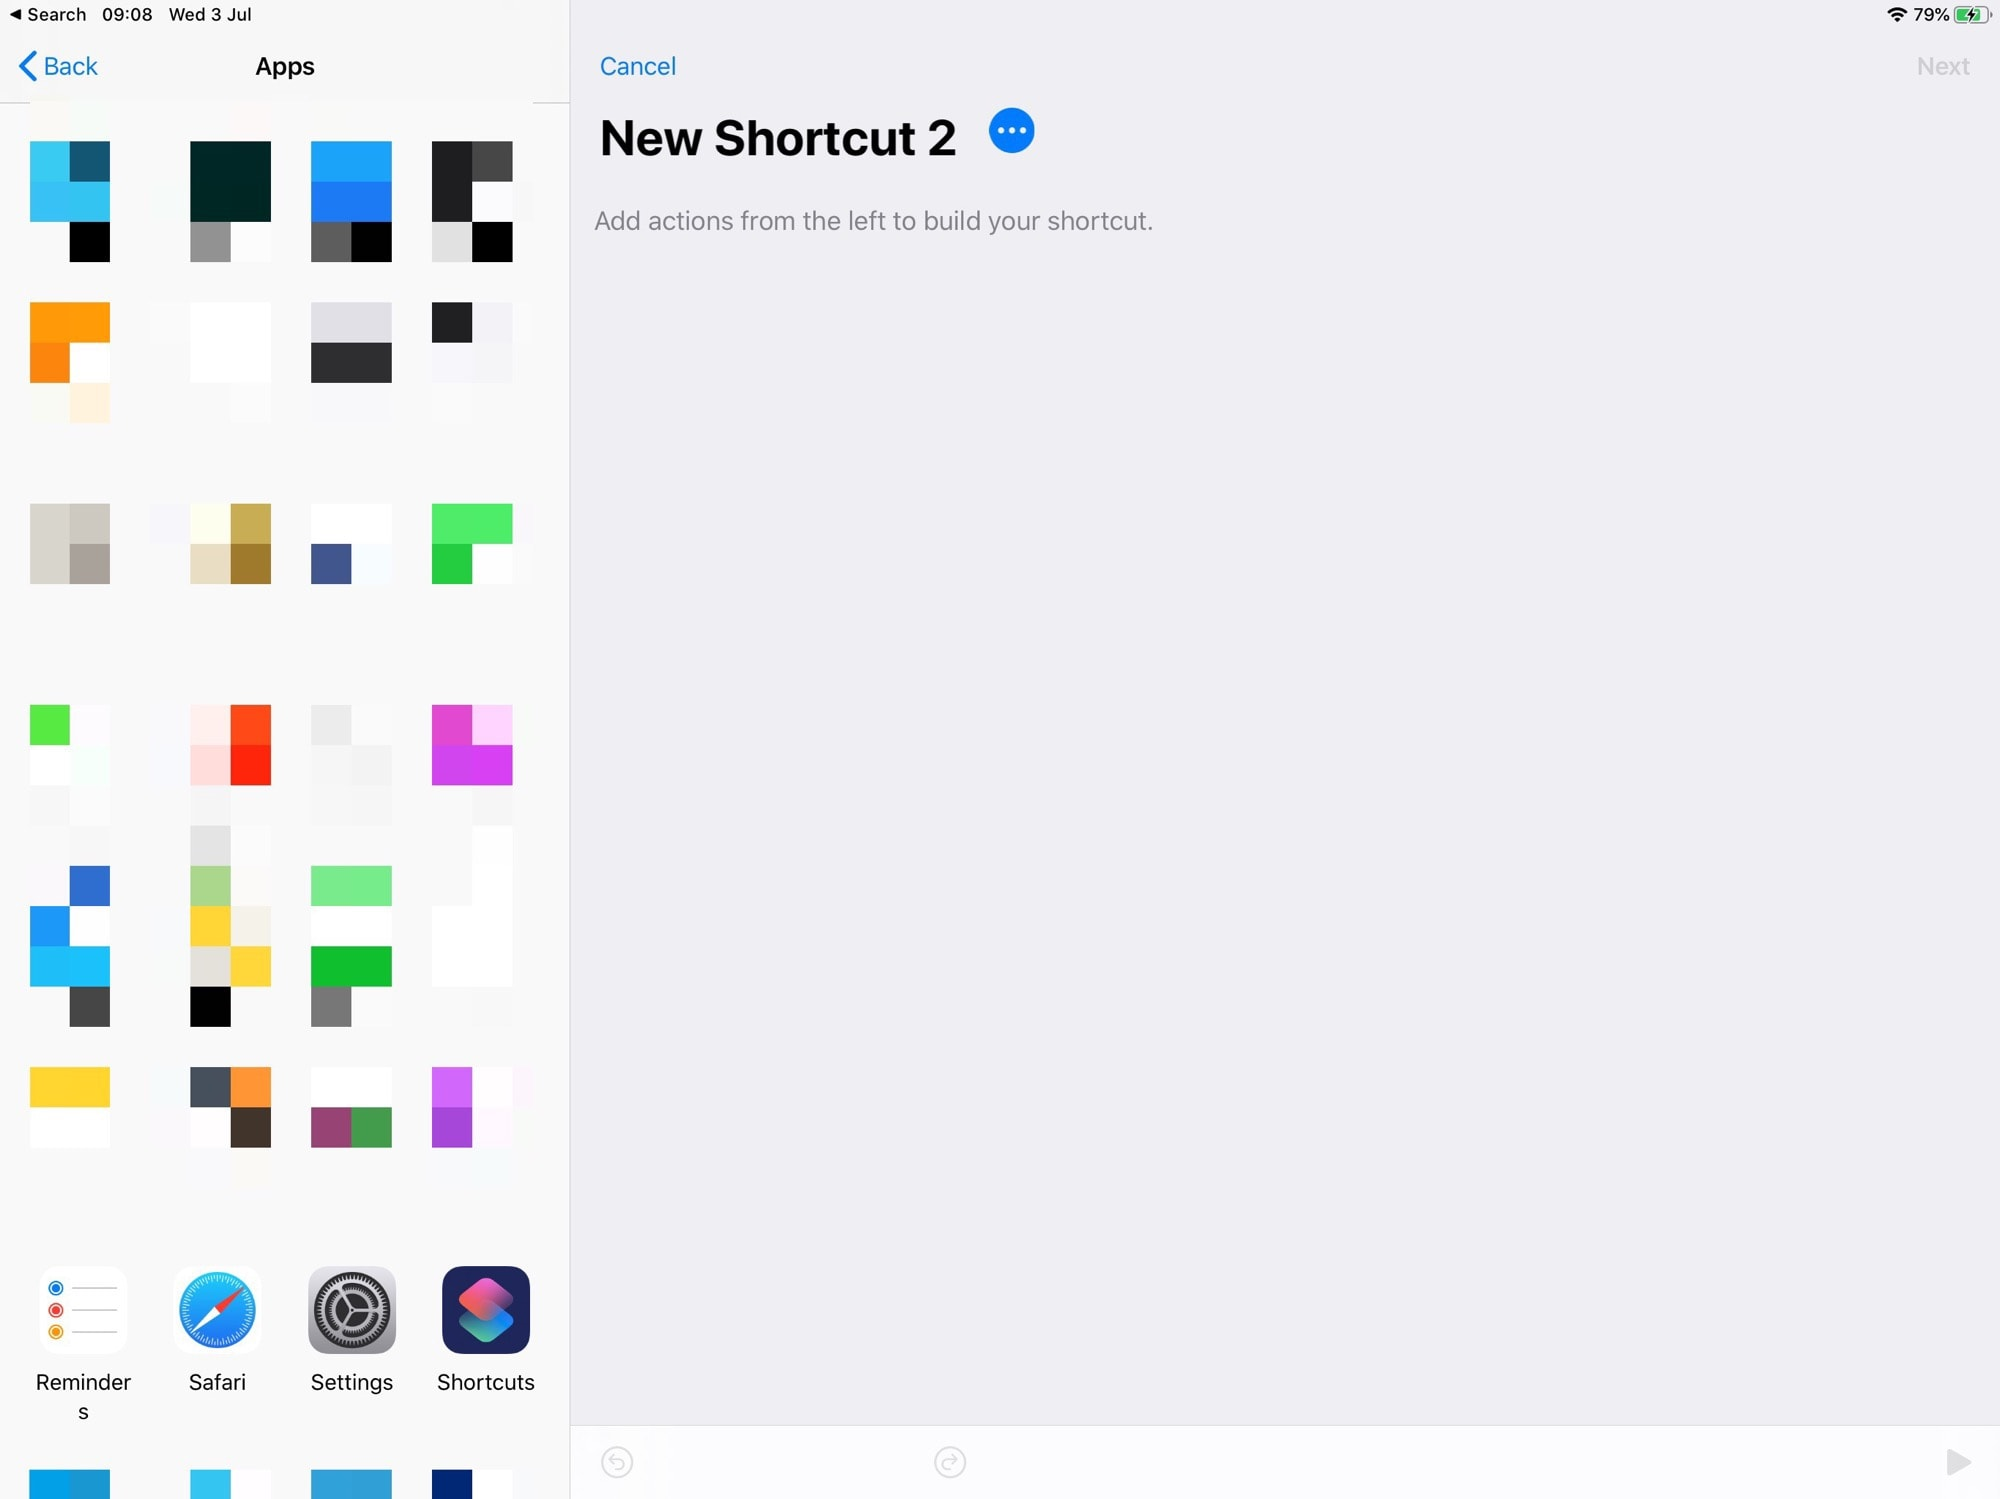 Tap an app to see its available shortcuts.